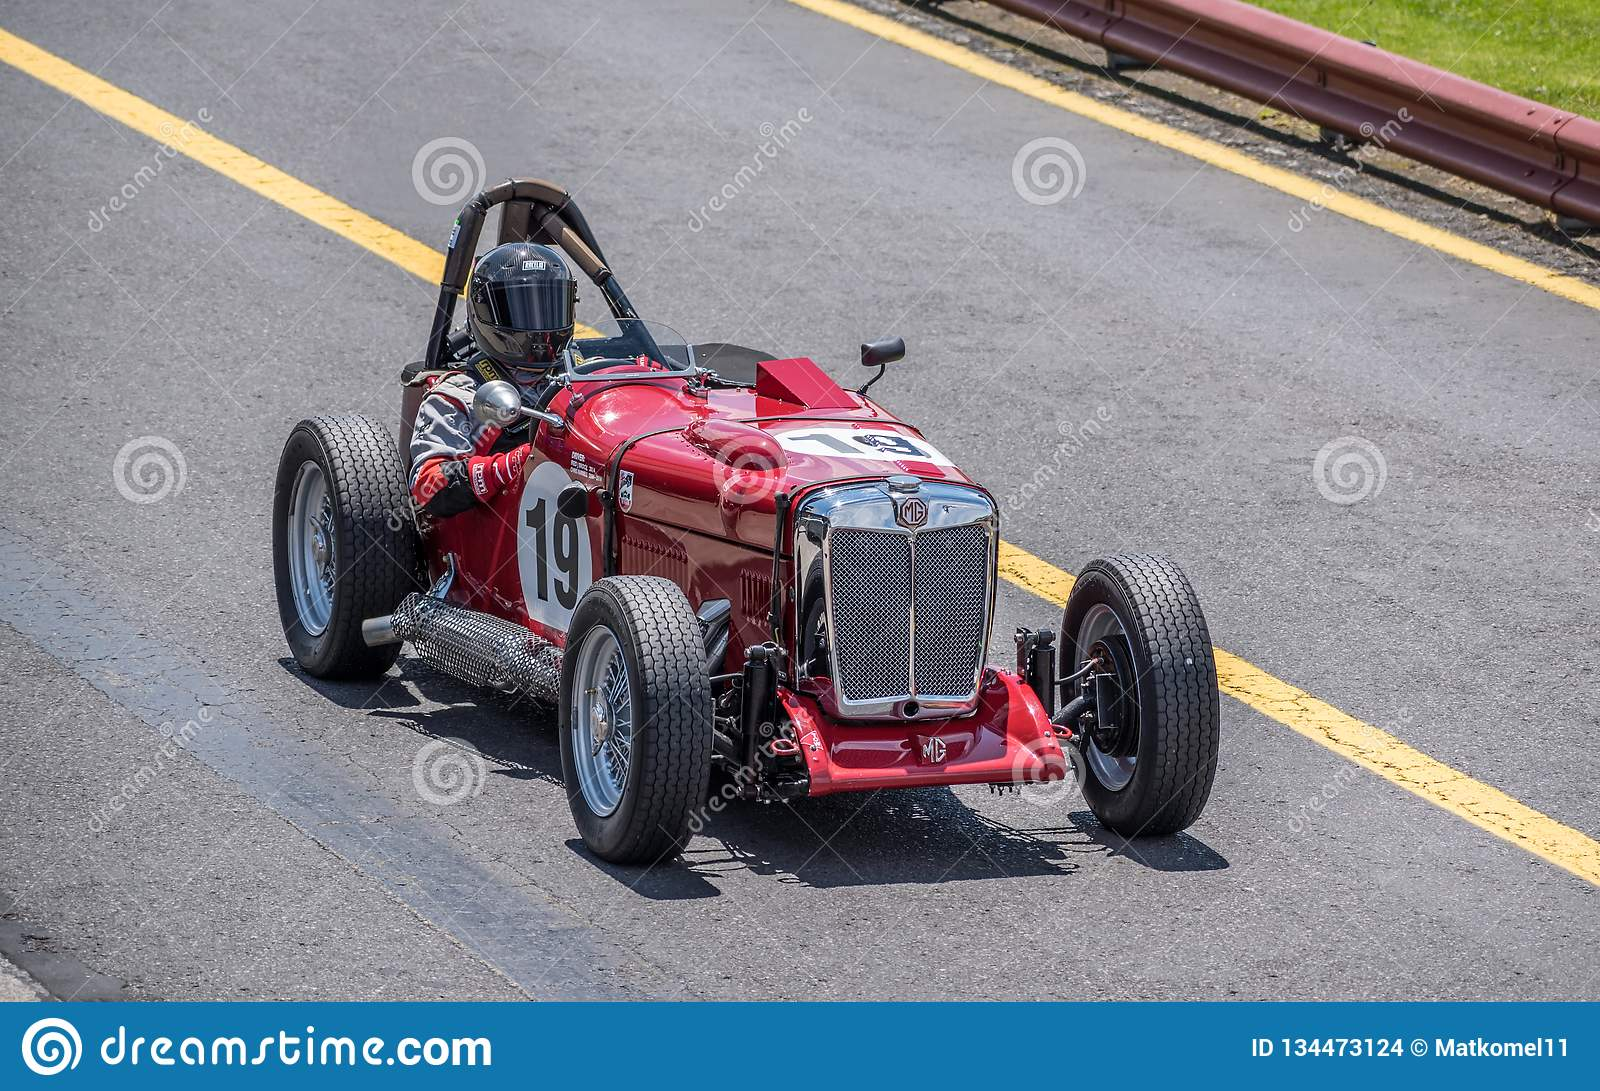 Vintage MG racing car